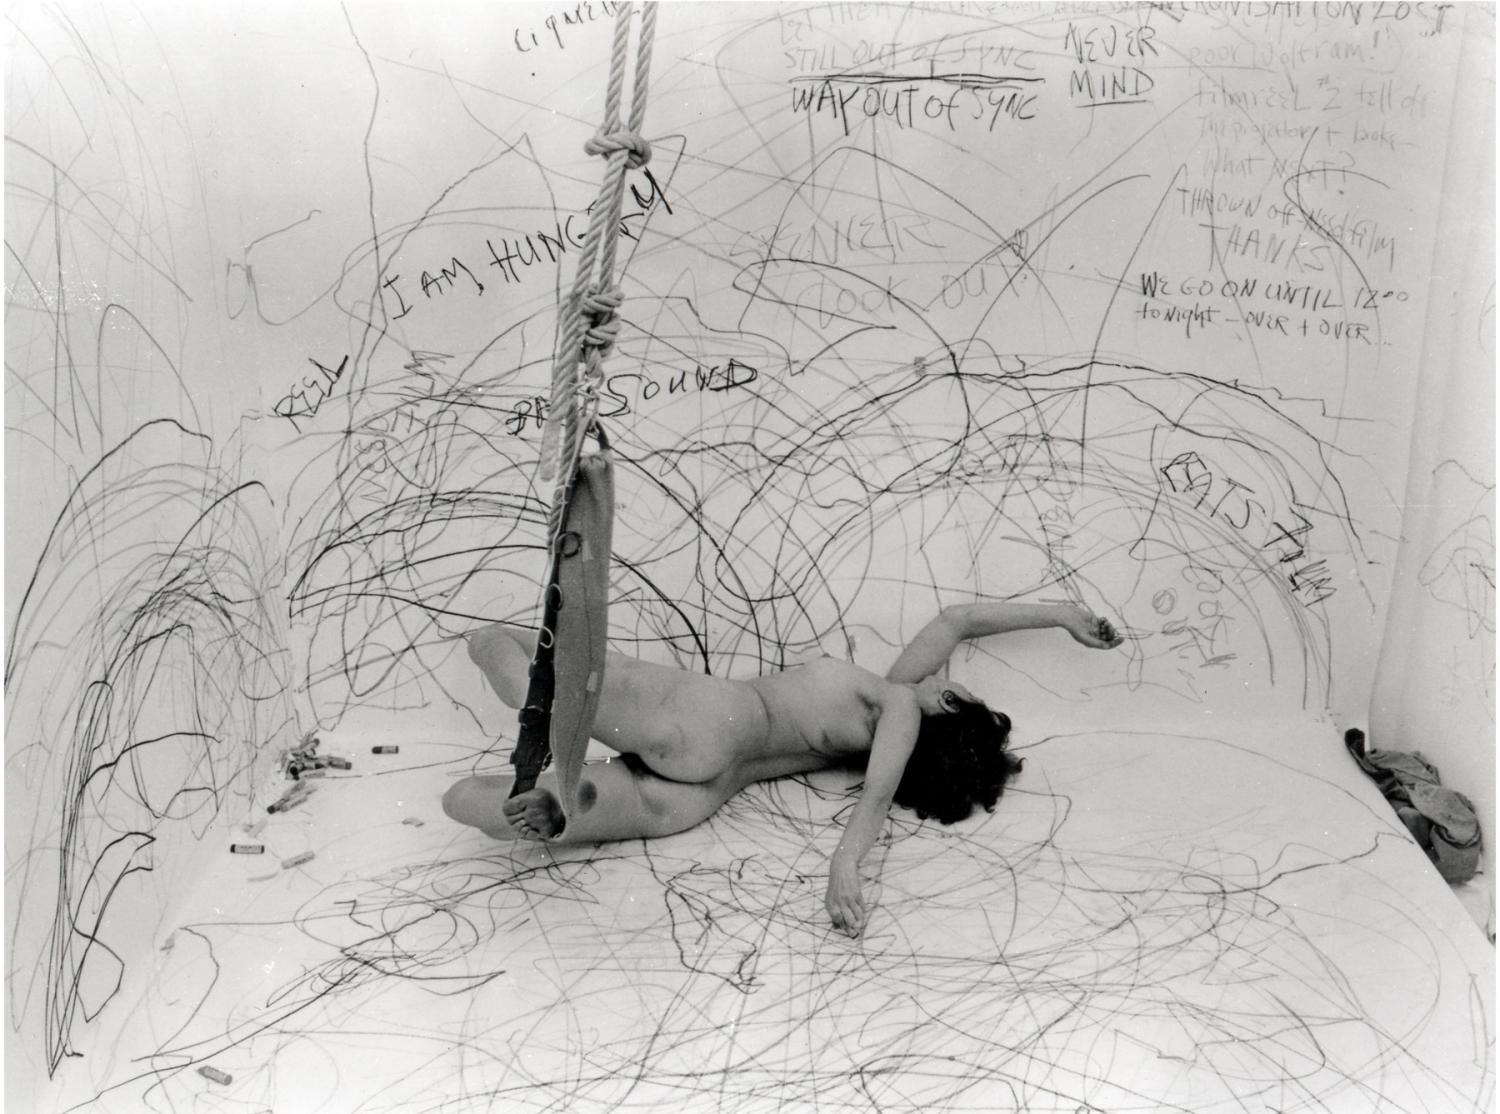 Carolee Schneemann, Up To And Including Her Limits, 1973–76. Crayon on paper, rope, harness. 2-channel analog video/audio transferred to digital video, 29 min. © Carolee Schneeman